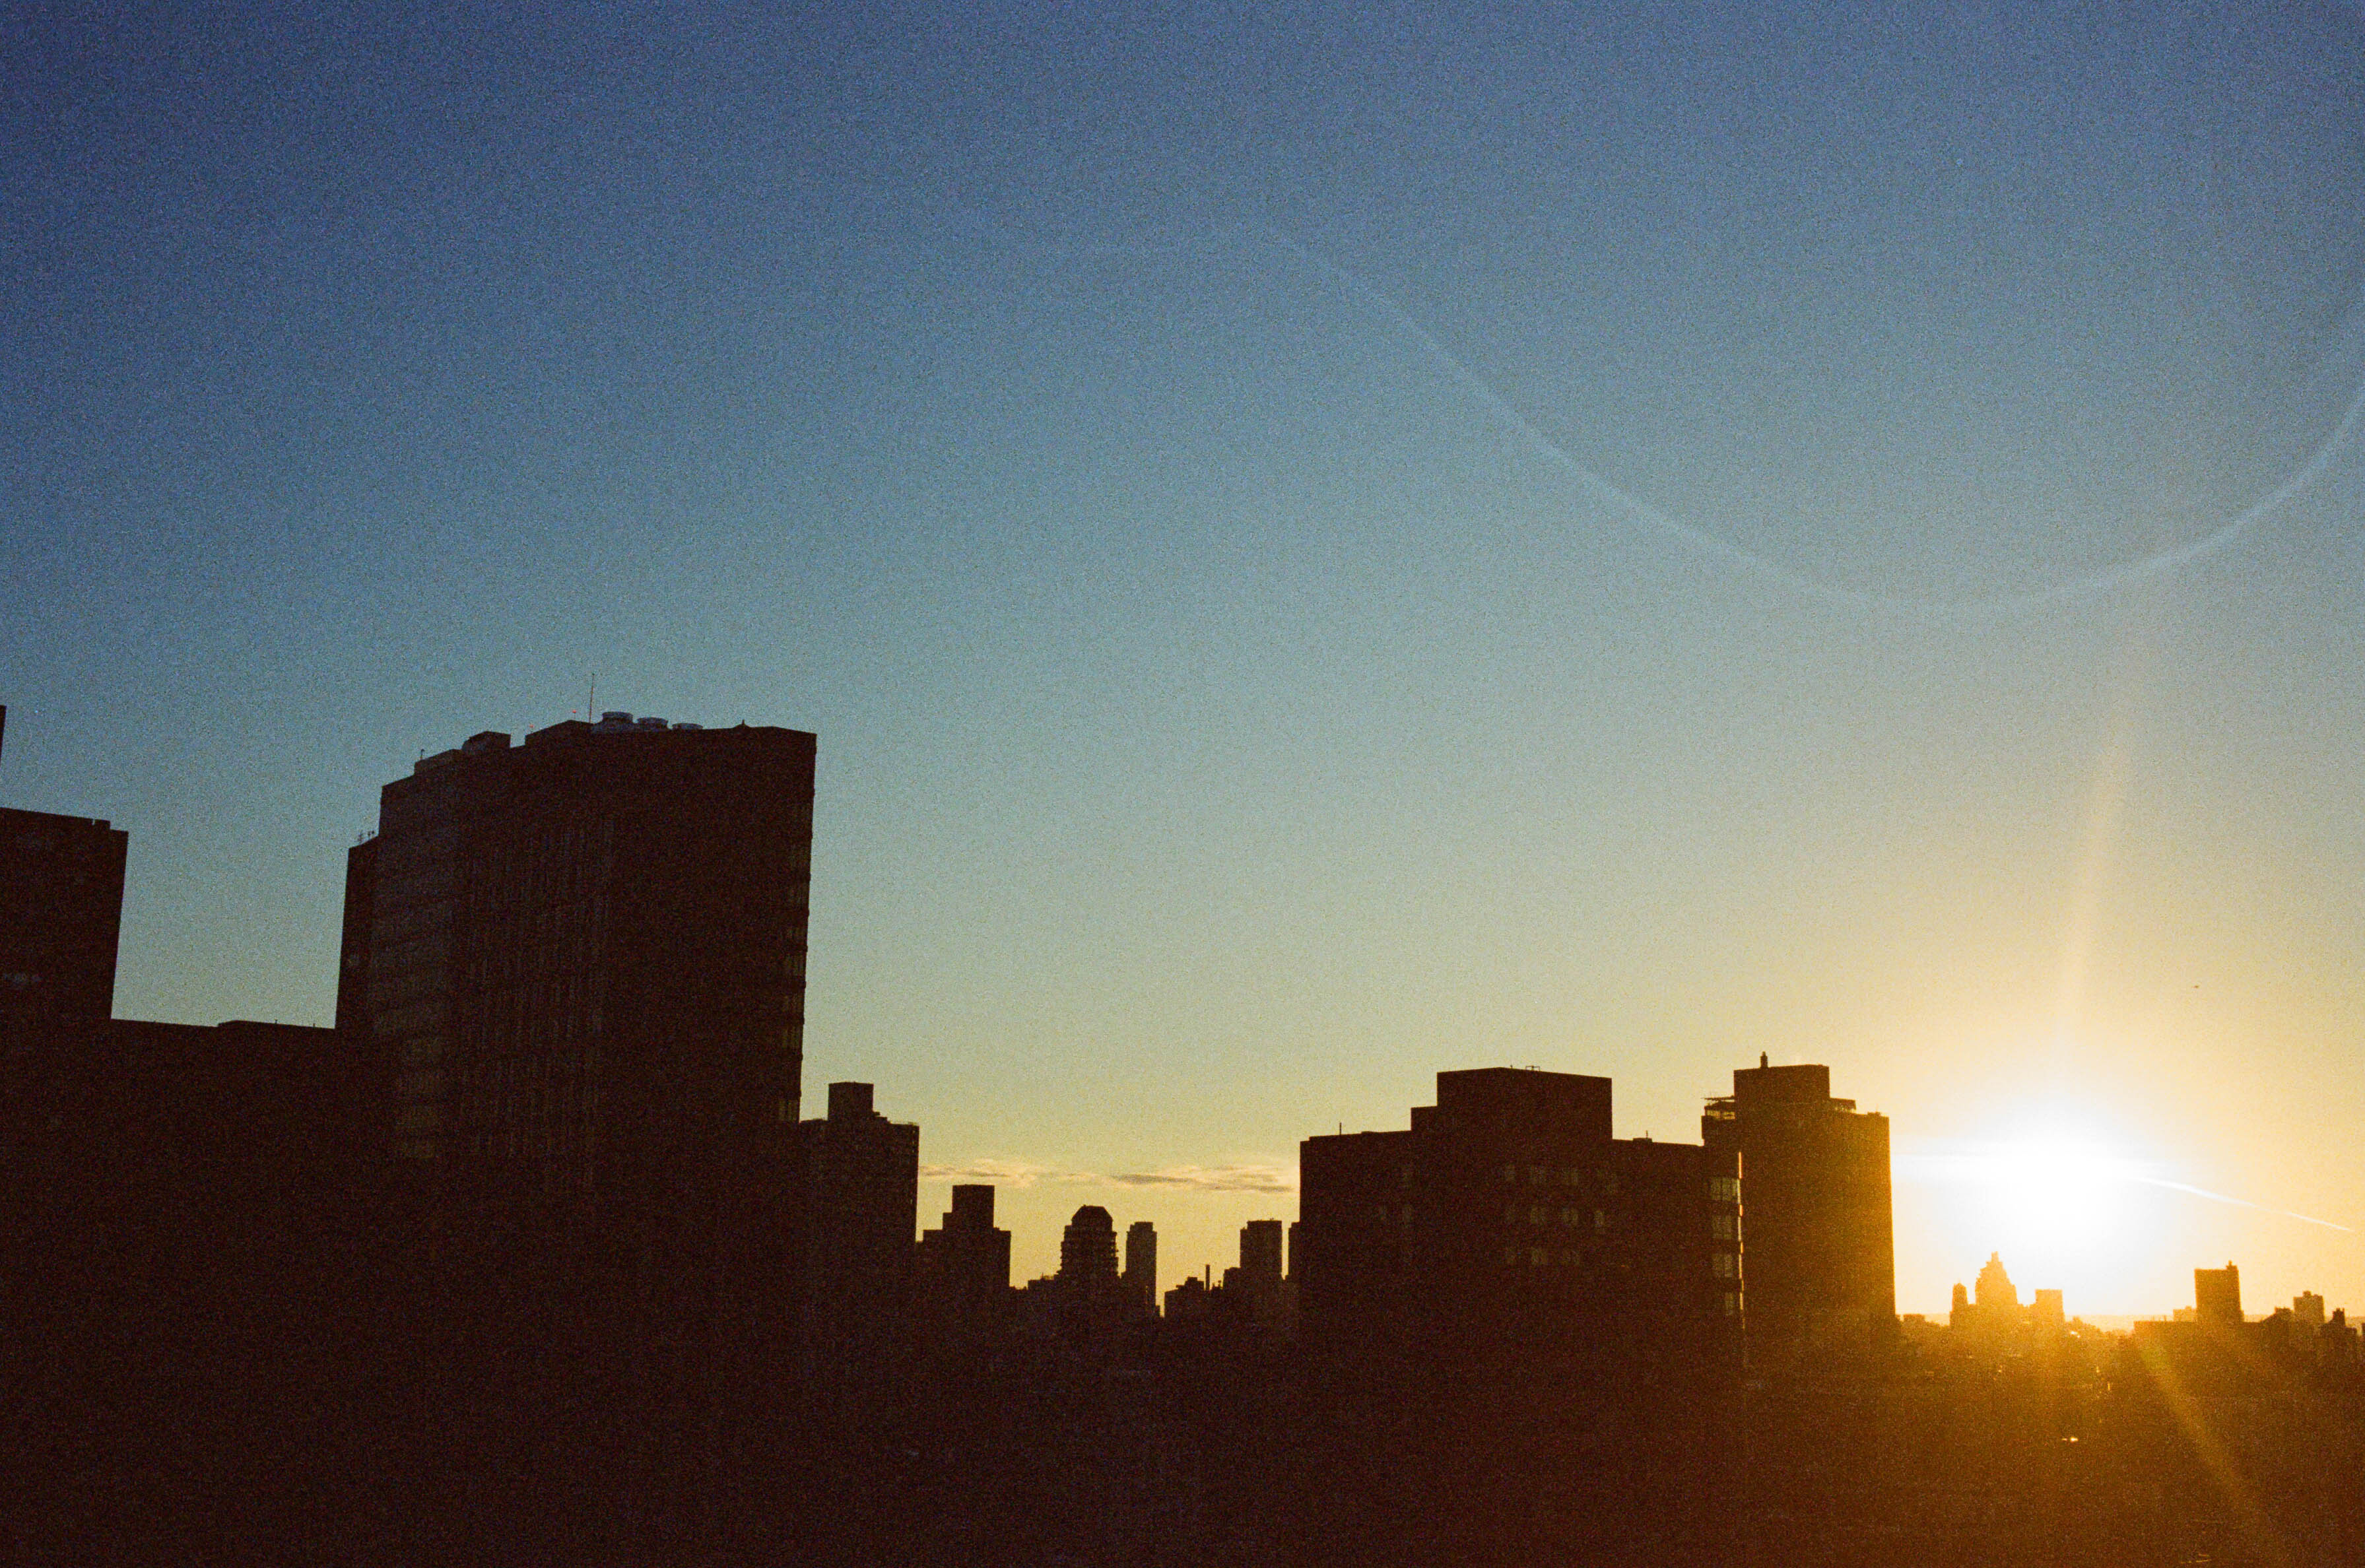 Summer Sunset  - E 95th Street, NYC